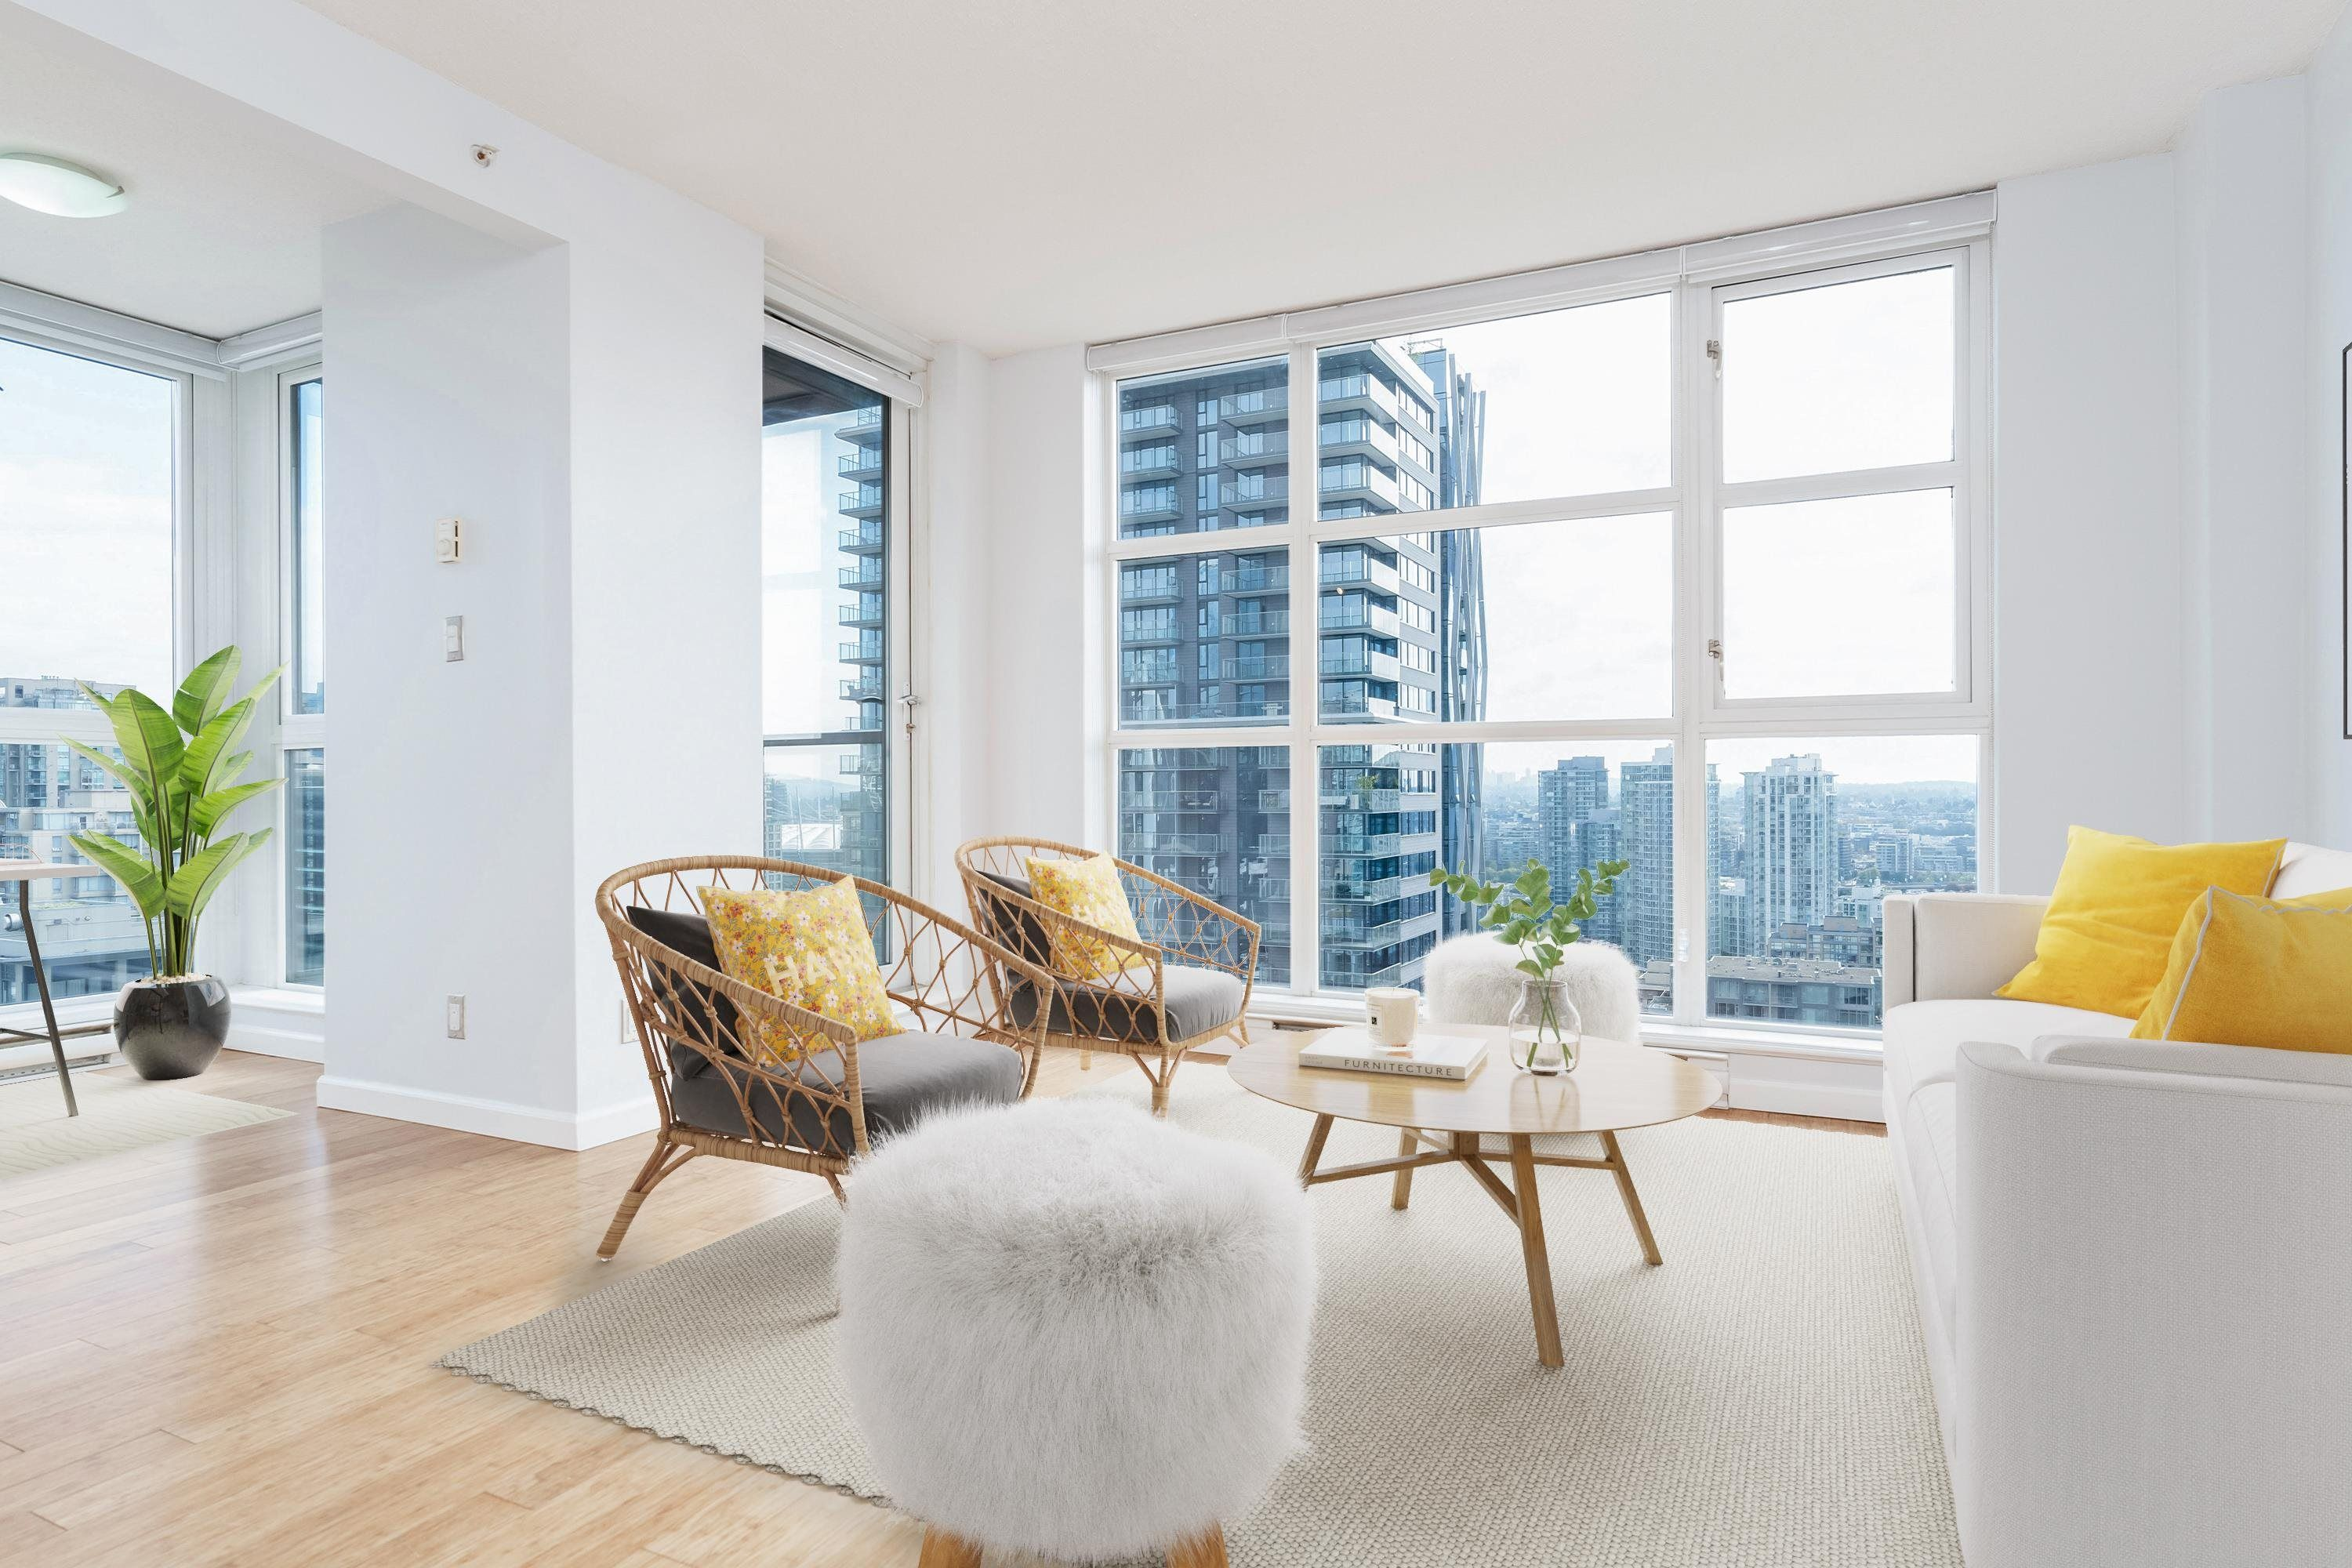 Main Photo: 2404 1155 SEYMOUR STREET in Vancouver: Downtown VW Condo for sale (Vancouver West)  : MLS®# R2618901